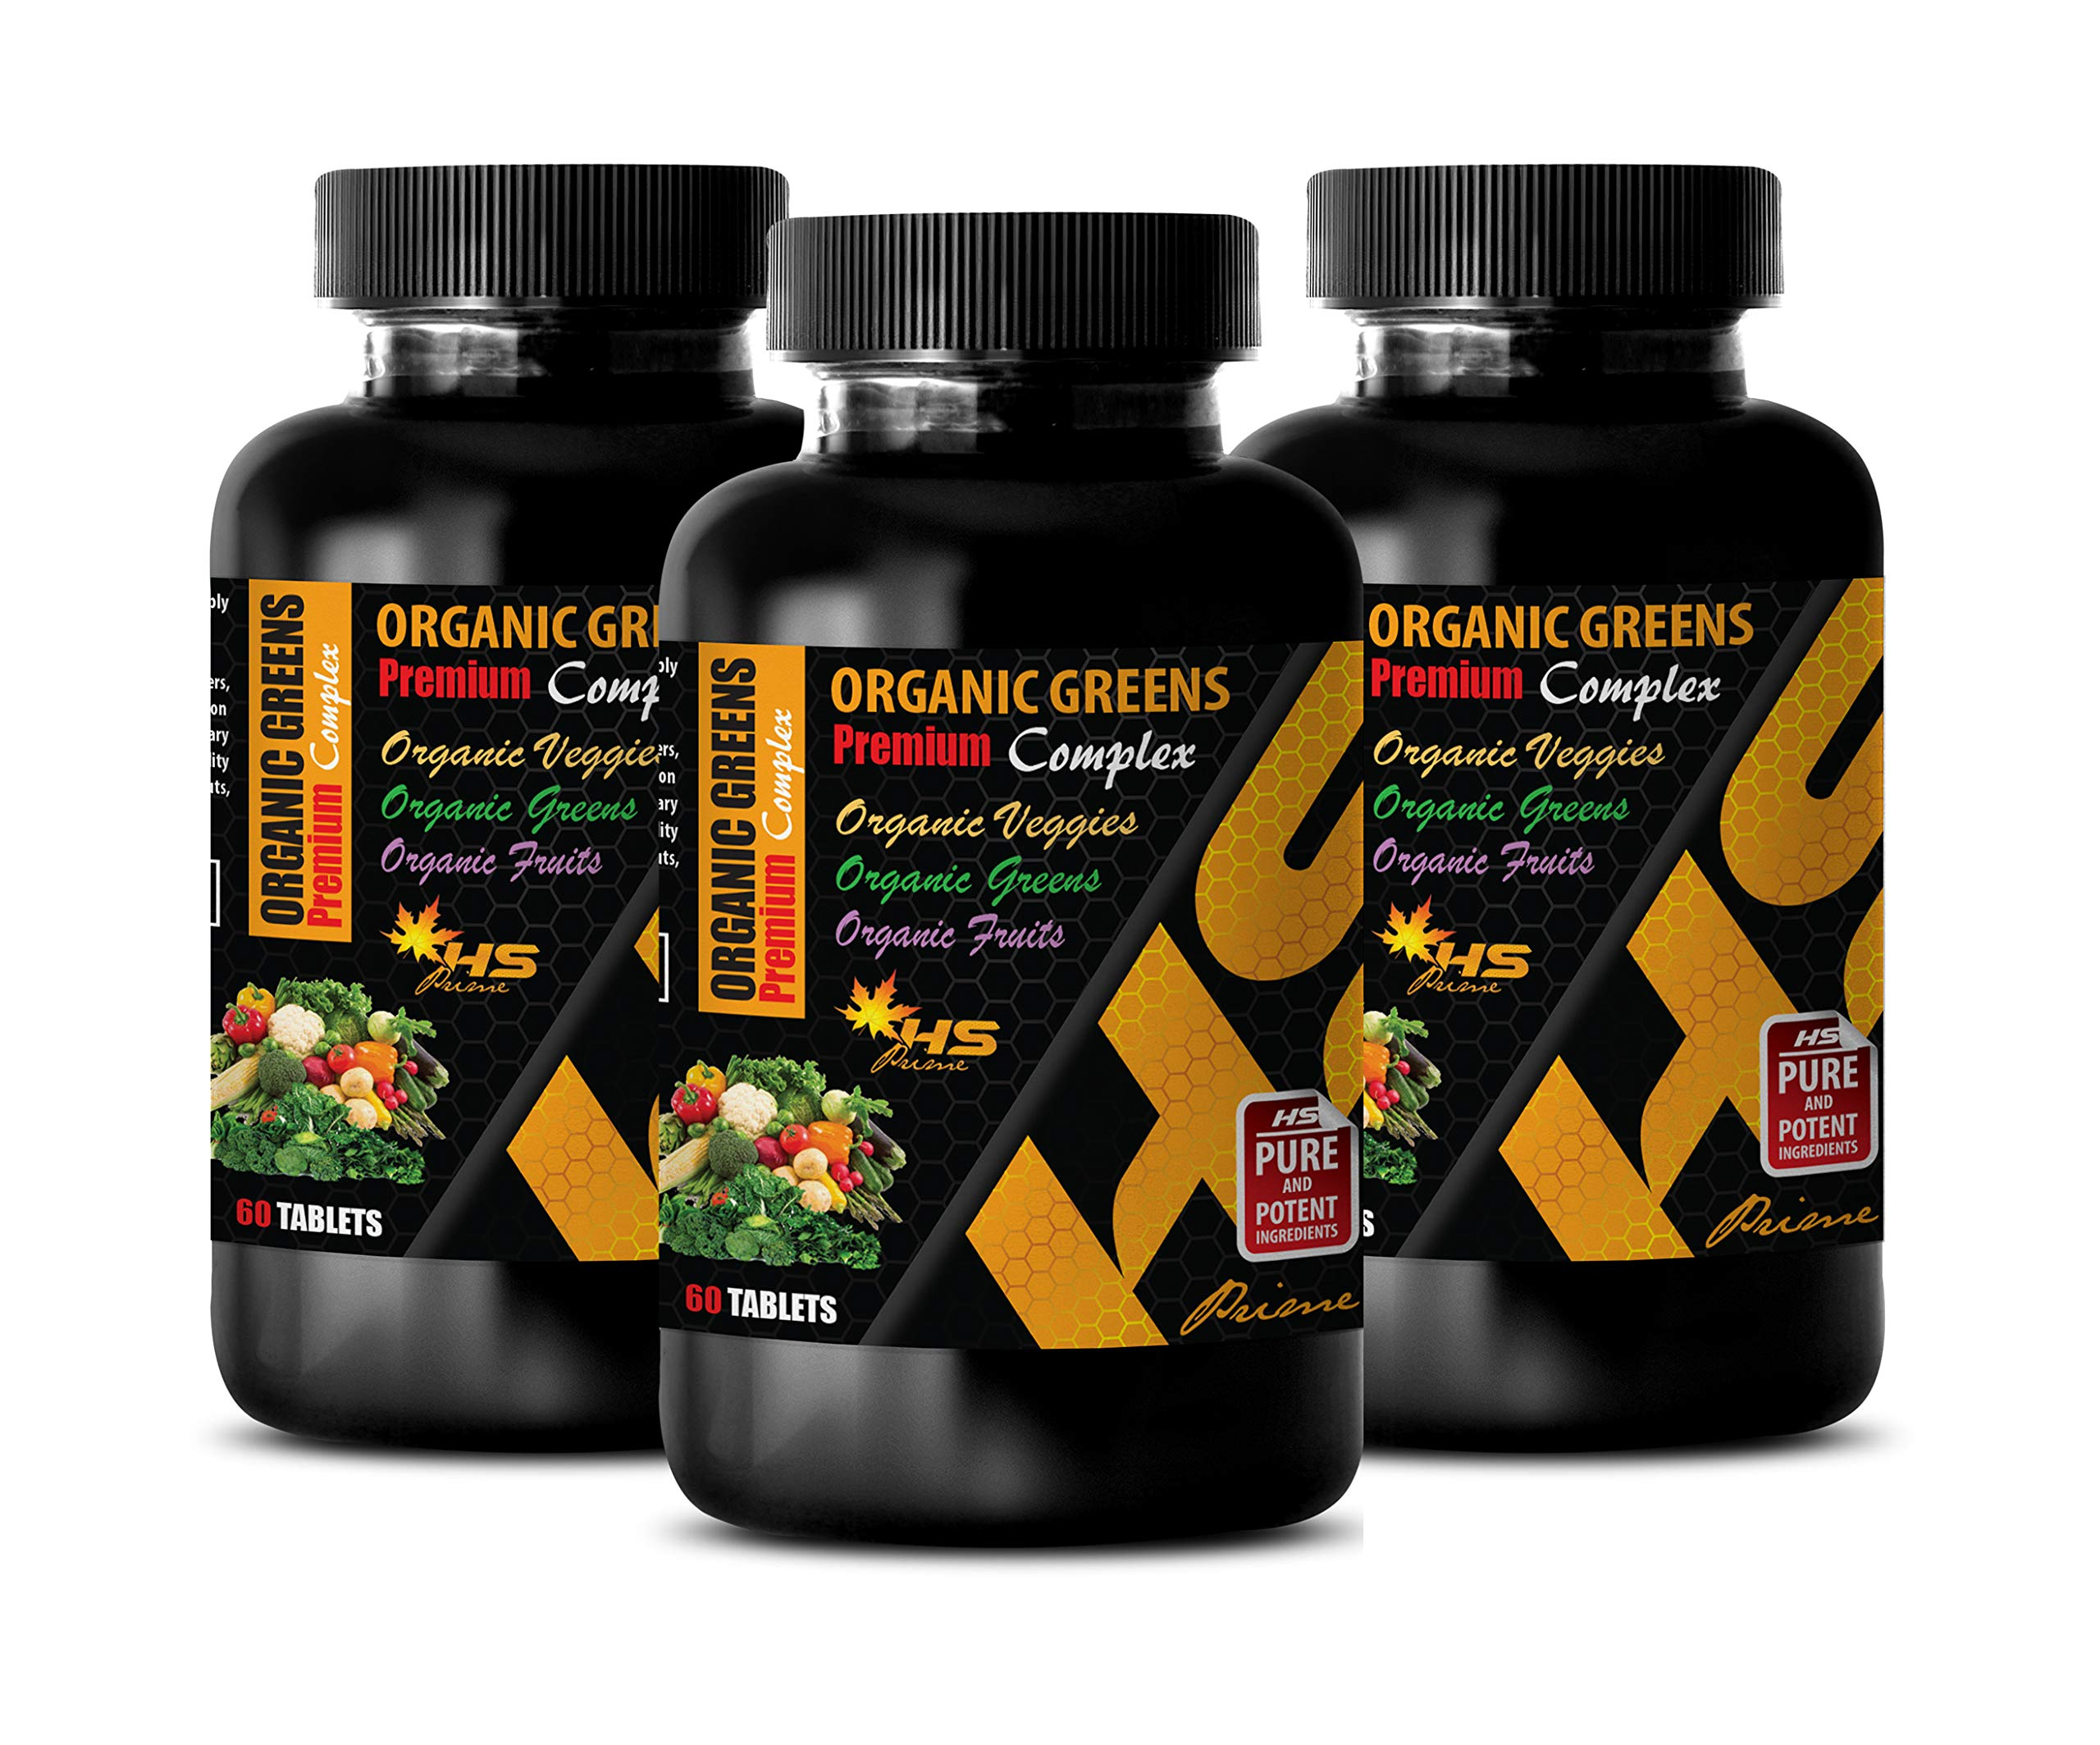 Cholesterol reducing Supplements - Organic Greens - Premium Complex - Garlic Supplement for Immune - 3 Bottles 180 Tablets